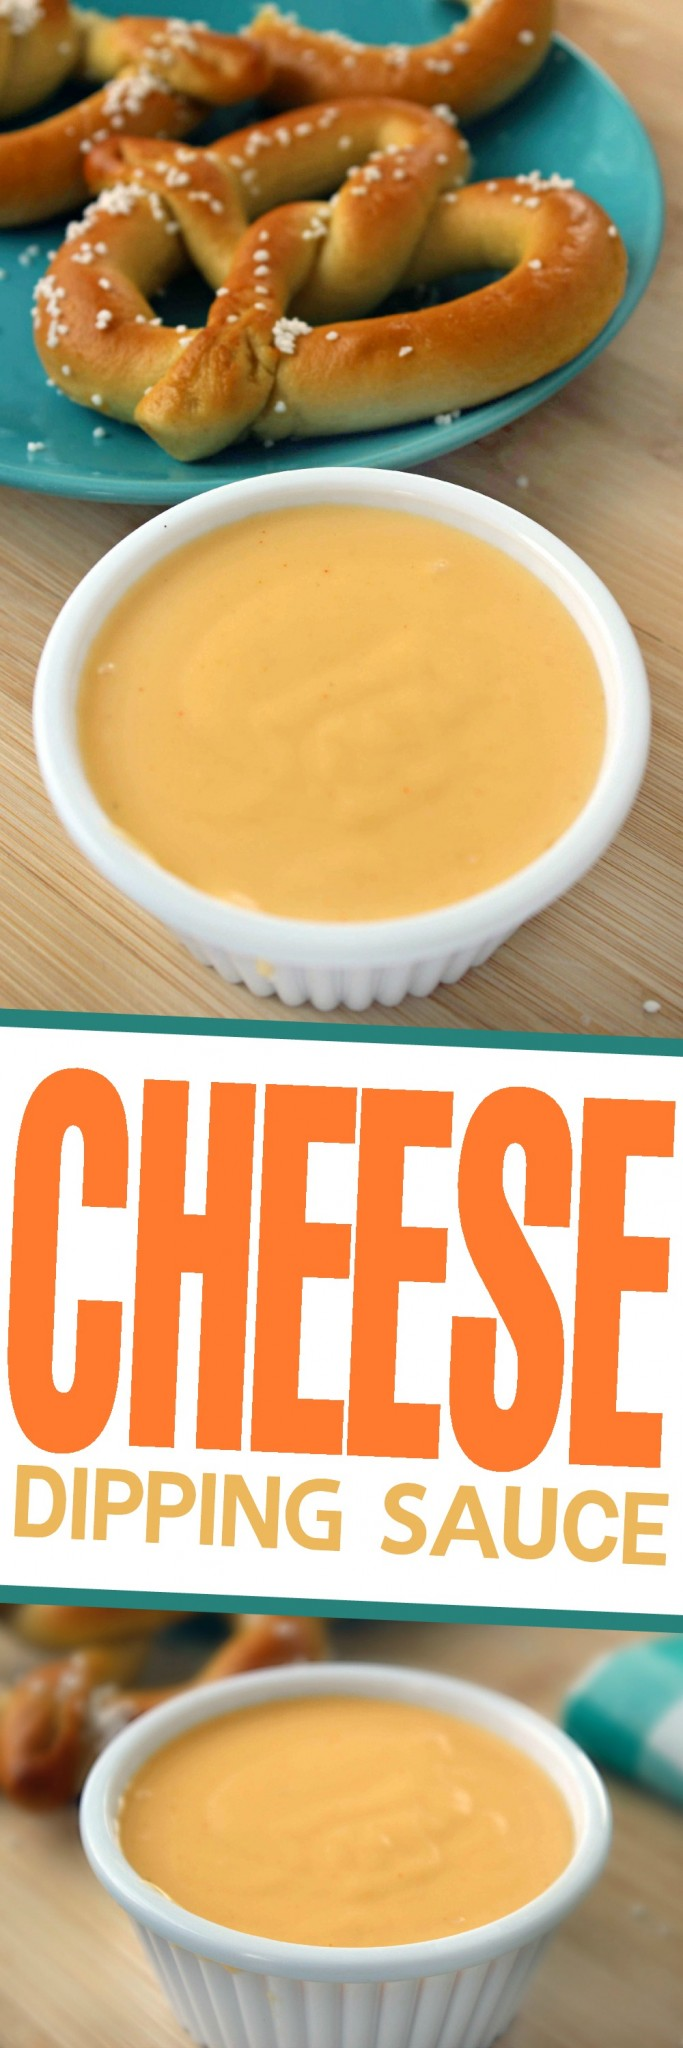 This is a Classic Cheese Dipping Sauce Recipe perfect for pairing with pretzels or nachos as an appetizer and works great over veggies like broccoli too!